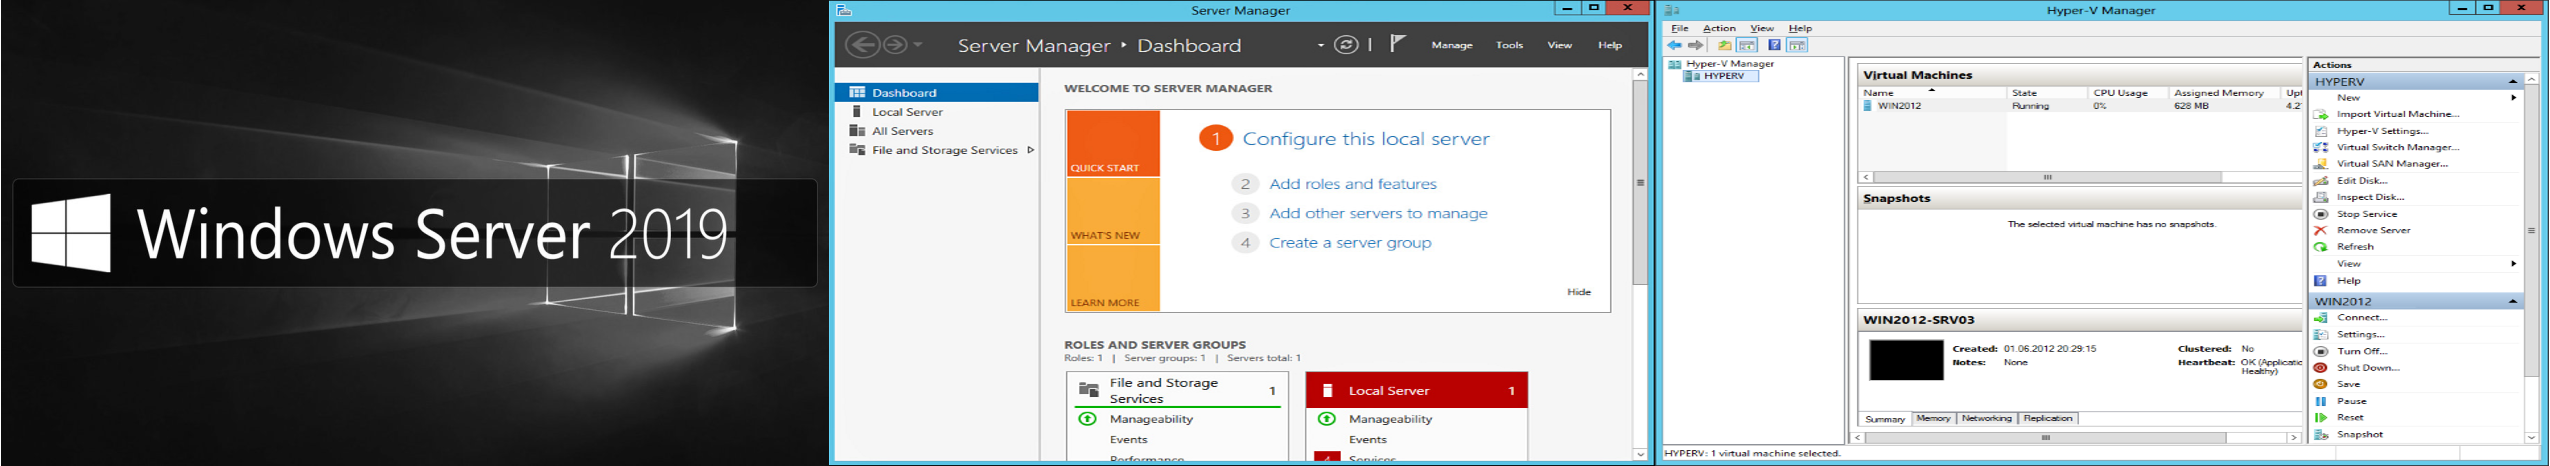 hyper-v manager download windows server 2012 r2